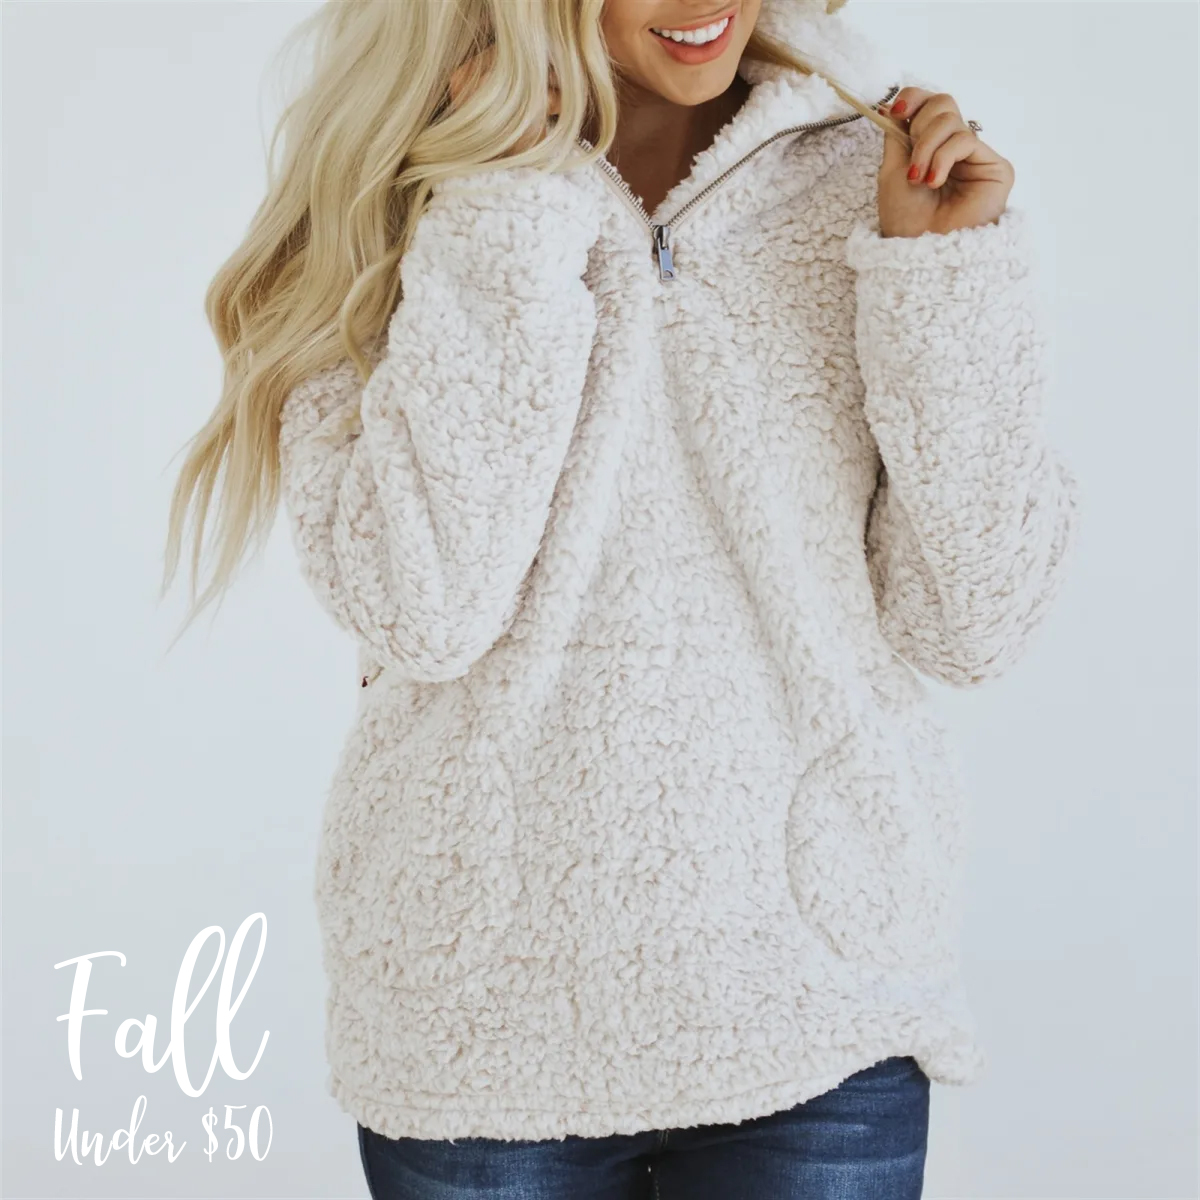 This  Sherpa Pullover  comes in 4 colors, and is a timeless closet staple. It will match so many outfits and excursions this Fall.  $26.99 plus $3.99 for the first item and $2.99 for each additional item. US only. Seller usually ships within 2 business days. Ships no later than Tuesday, Aug 27.